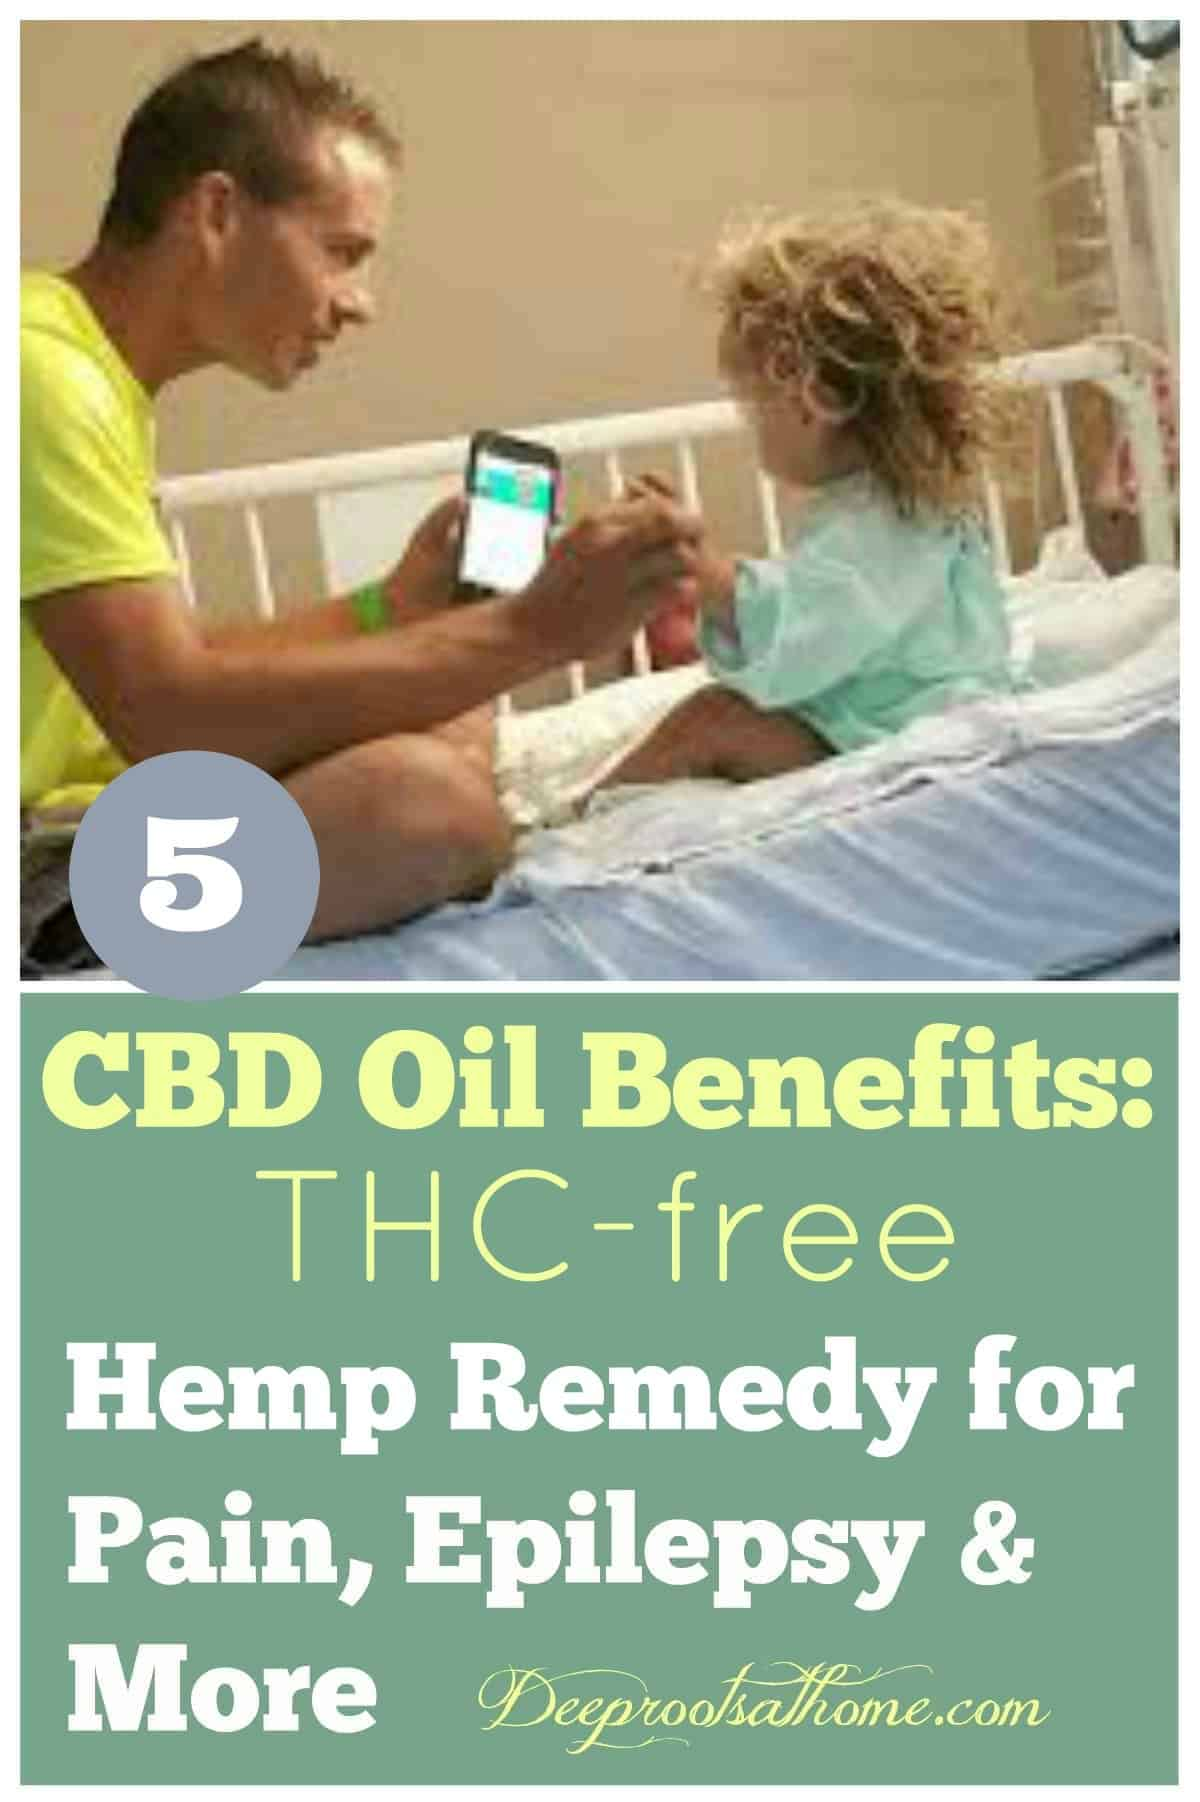 5 CBD Oil Benefits: THC-free Hemp Remedy for Pain, Epilepsy, More. Jade and Lehla Jerger, parents of Jaelah, fight for their rights to use CBD oil for their daughter's epilepsy.